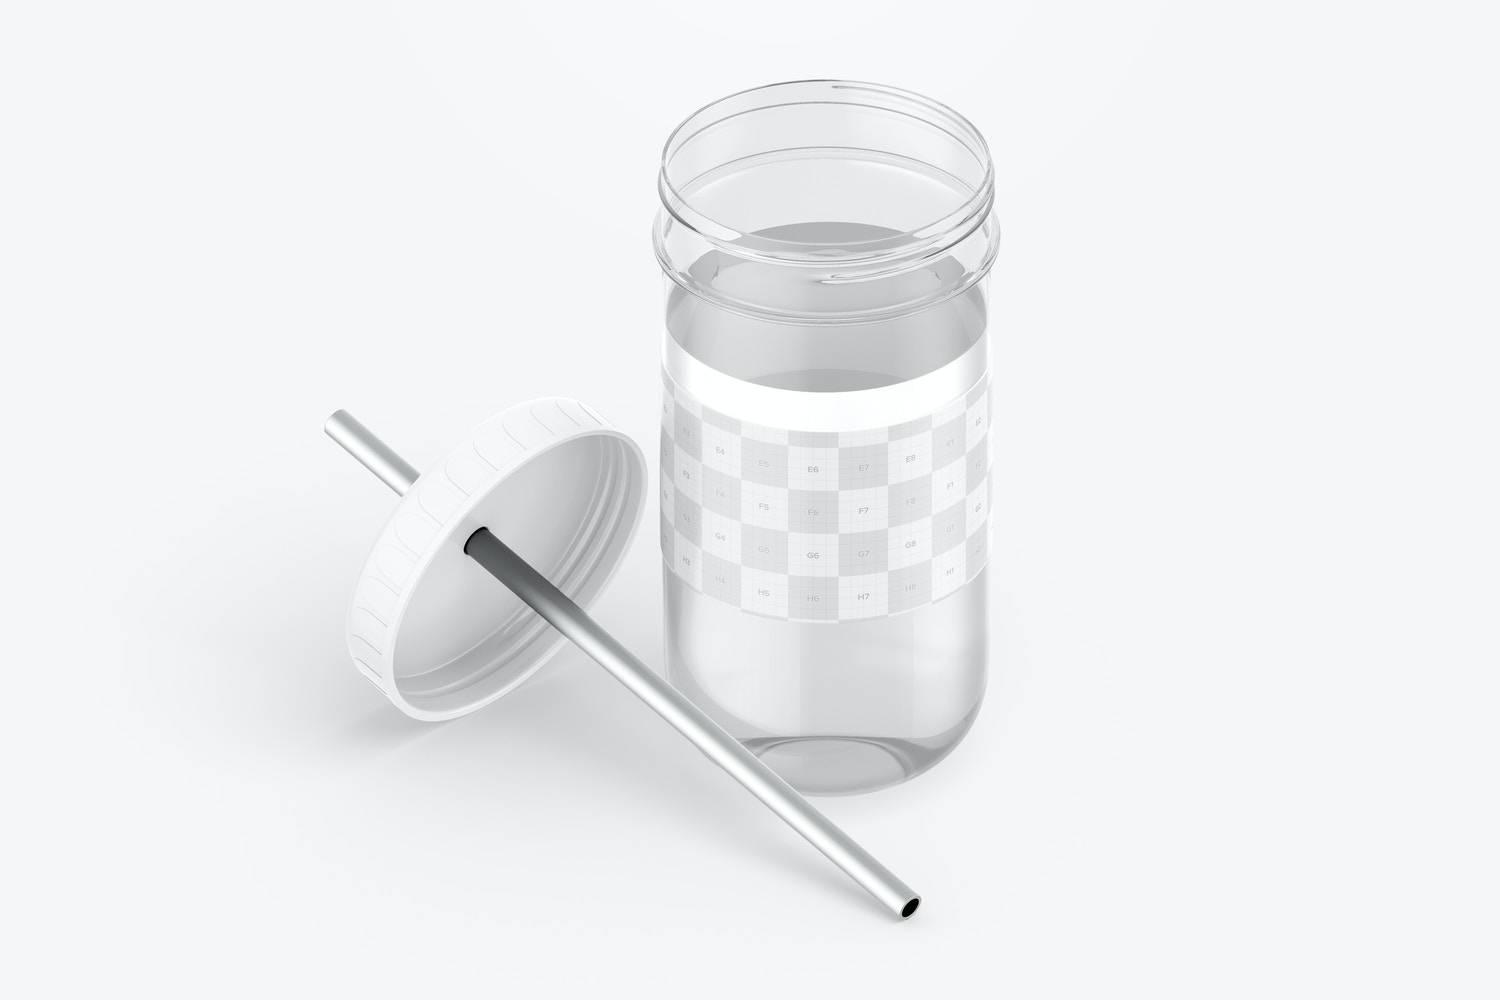 Smoothie Cup with Lid Mockup, Isometric Opened View